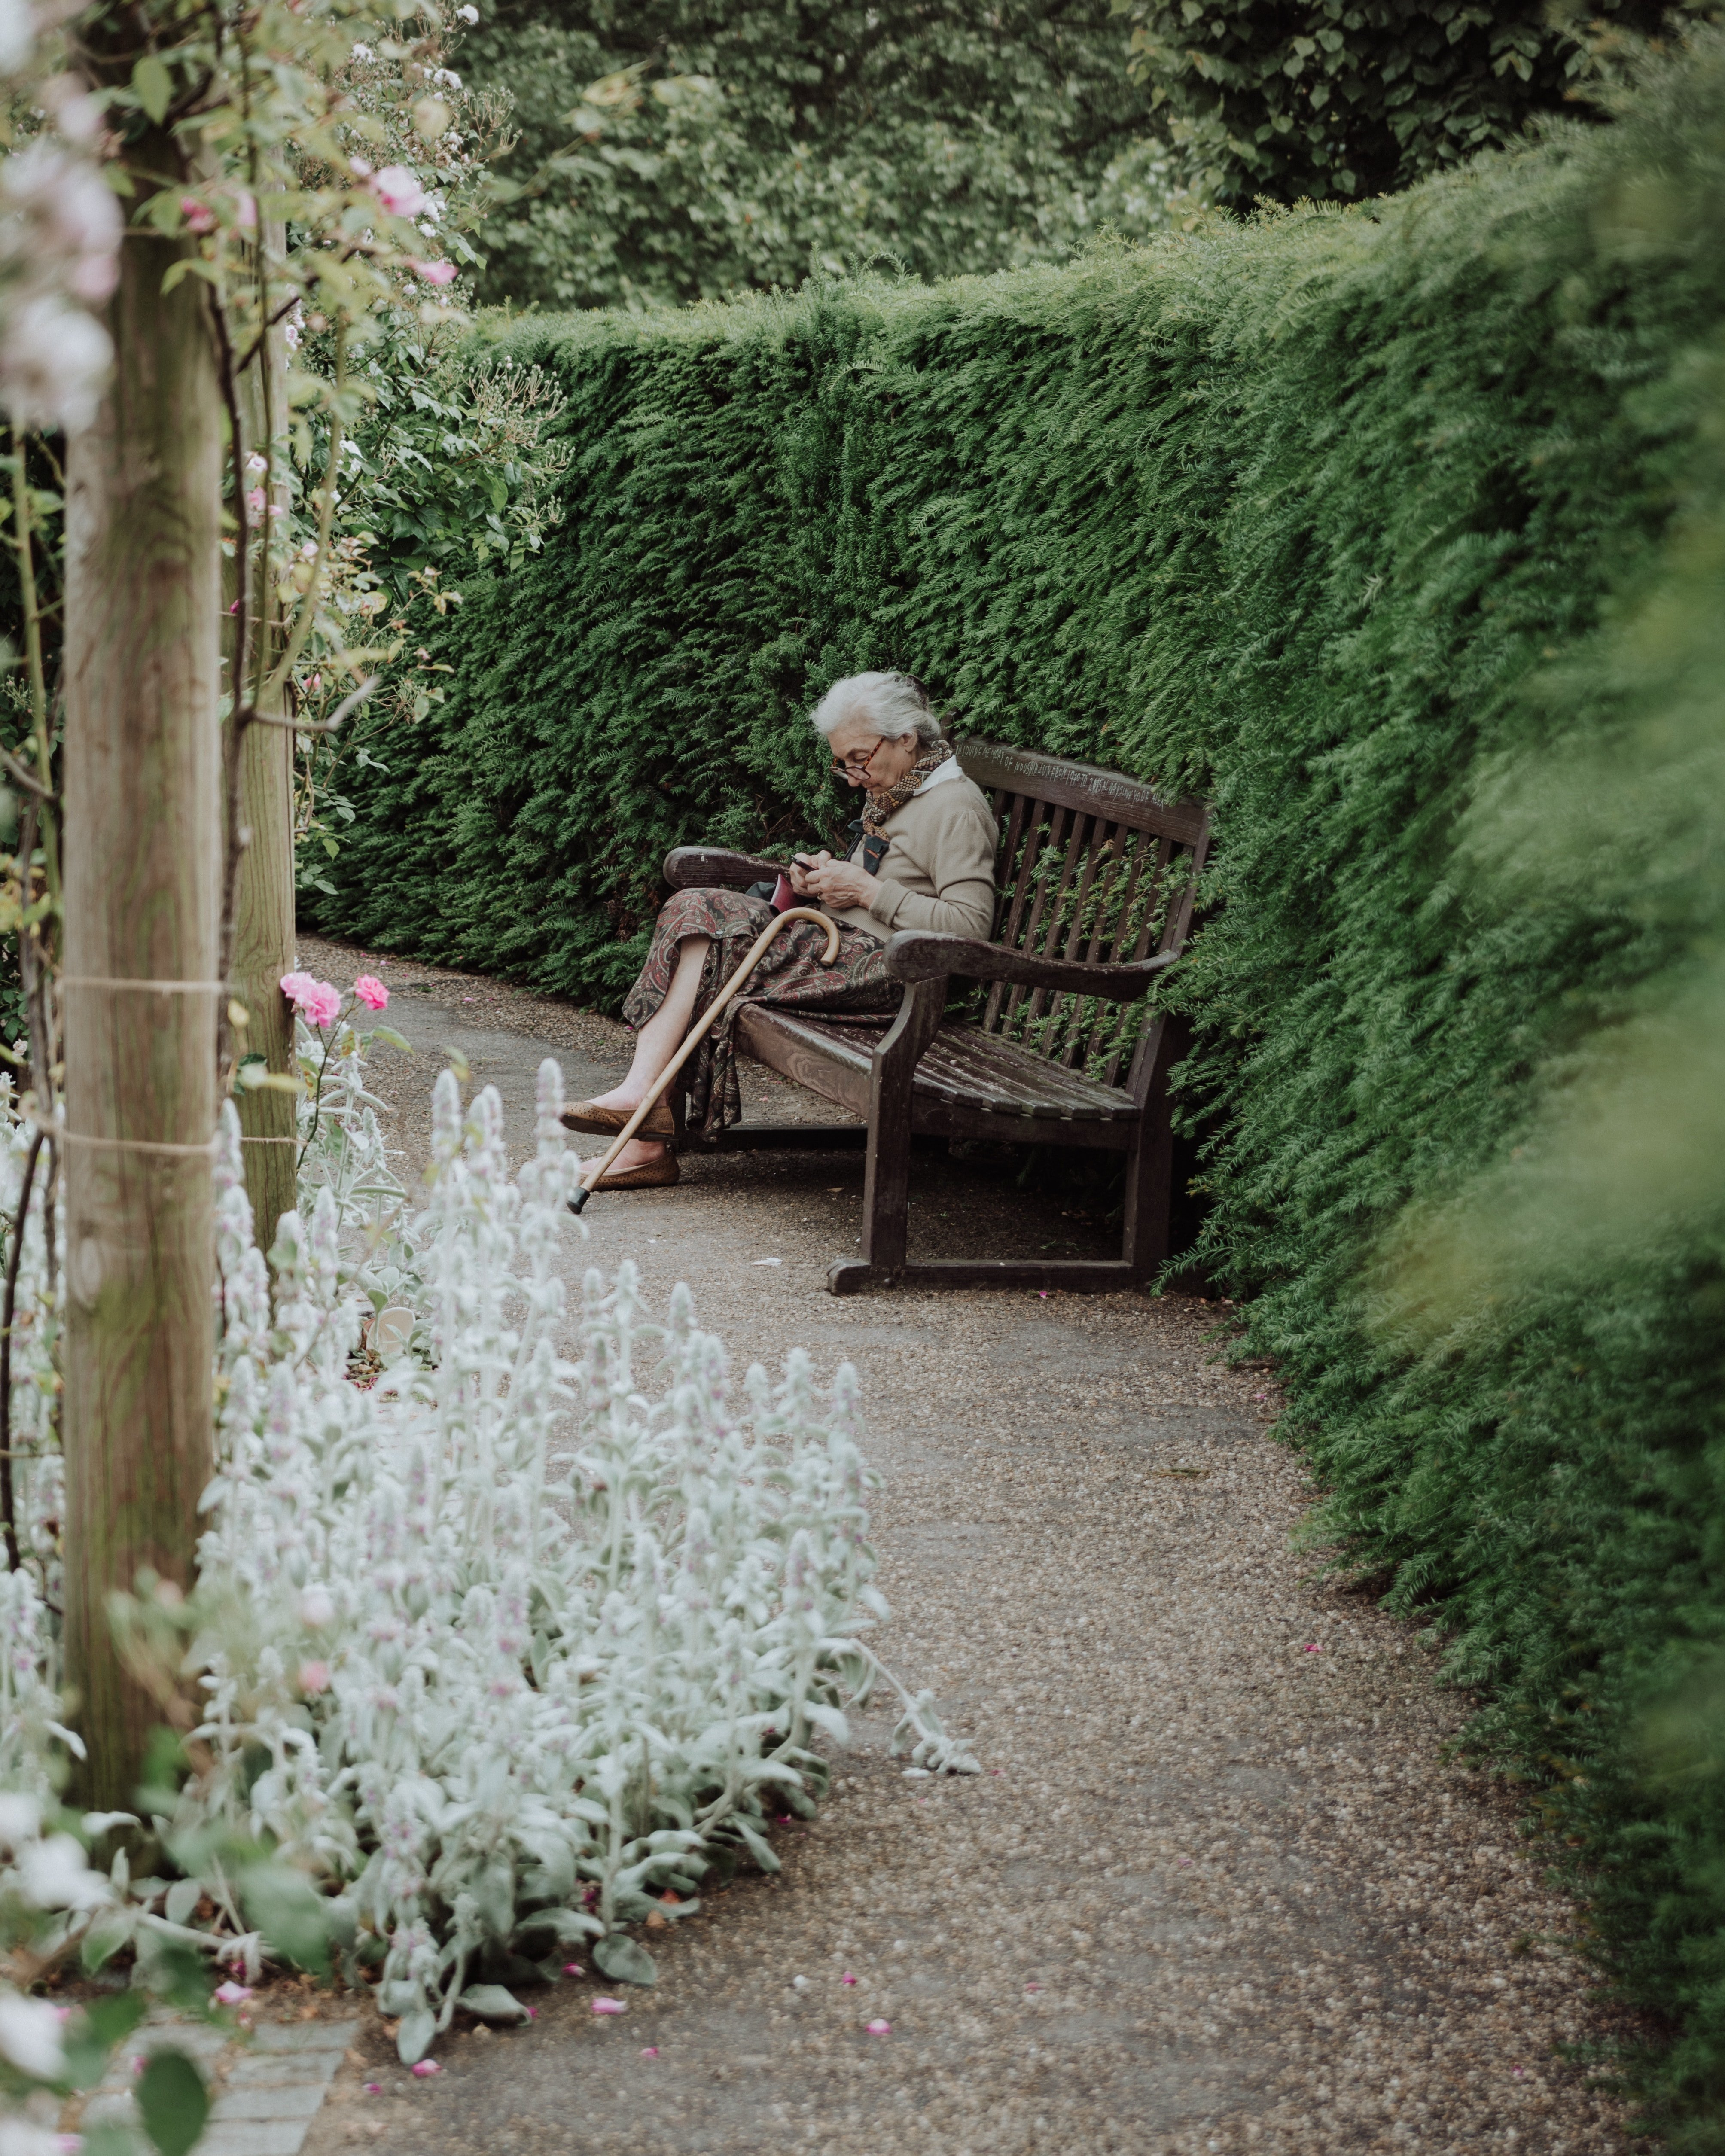 I saw the old lady several times but she was always alone   Photo: Unsplash